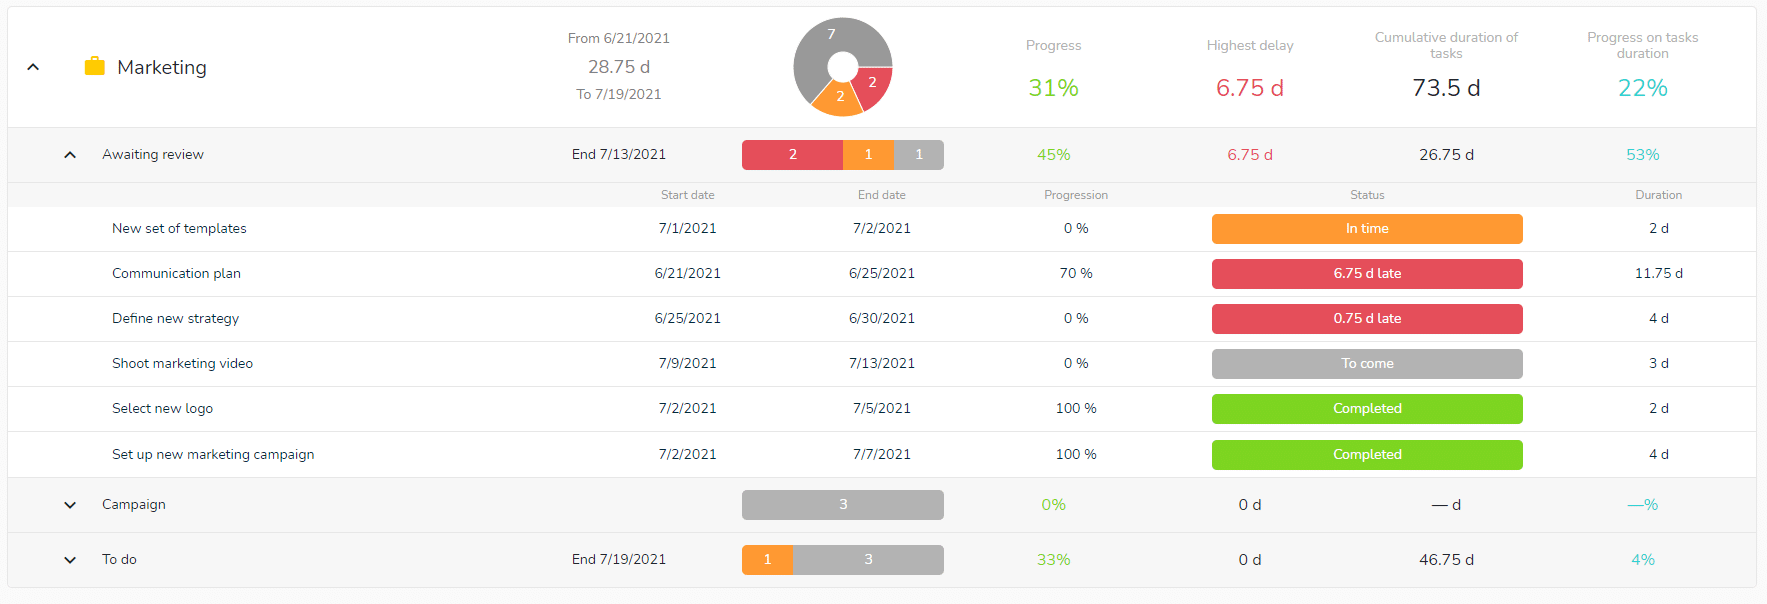 Follow the progress of your team members with the global dashboard.